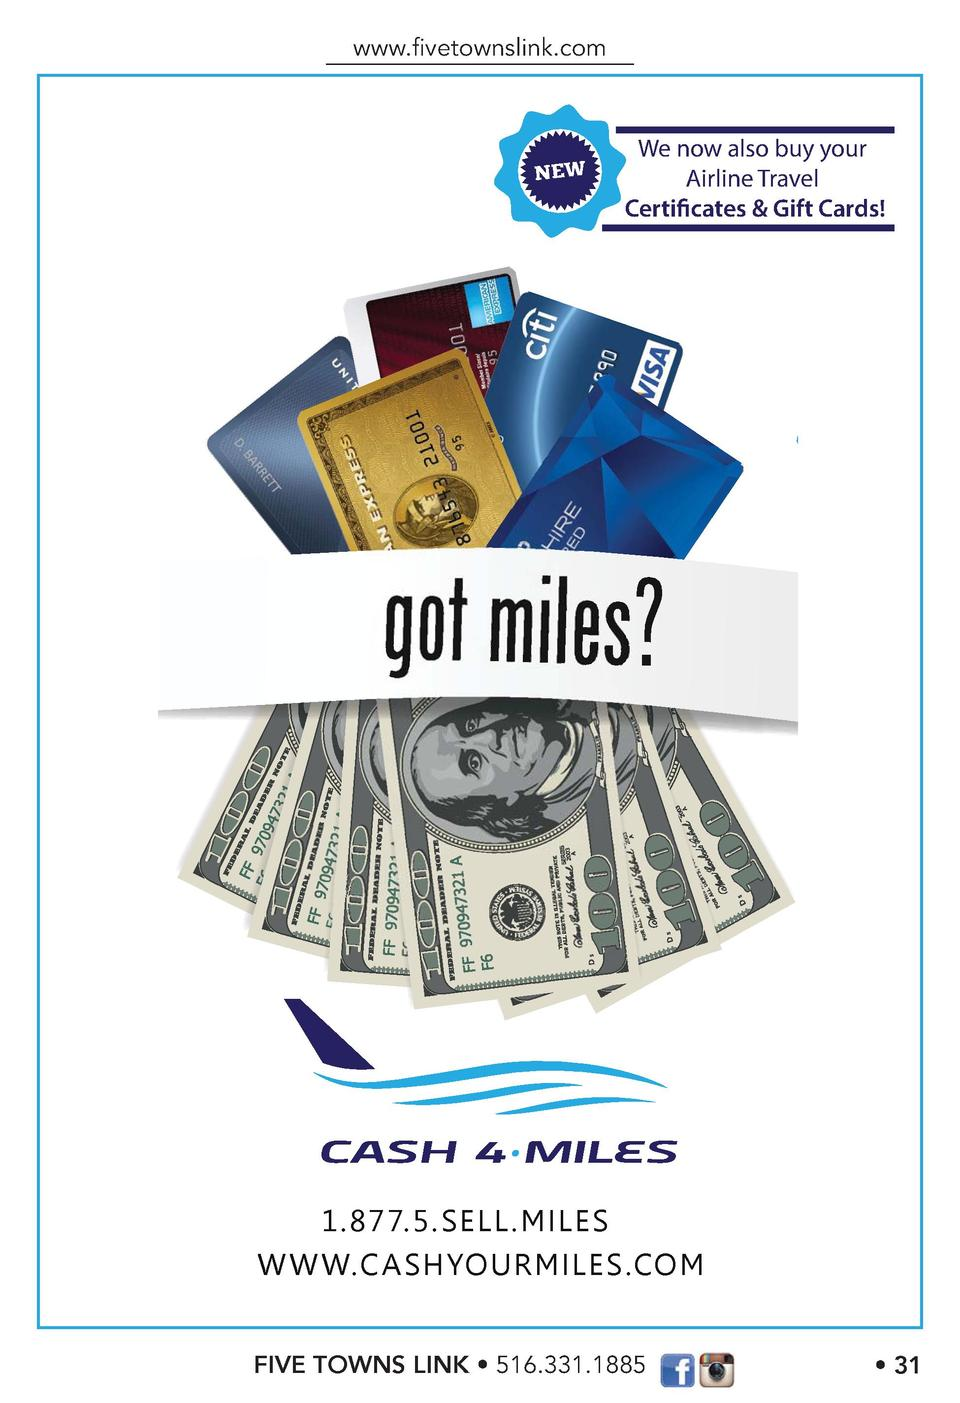 www.   vetownslink.com  We now also buy your Airline Travel Certificates   Gift Cards   1.877.5.SELL.MILES W W W.CASHYOURM...